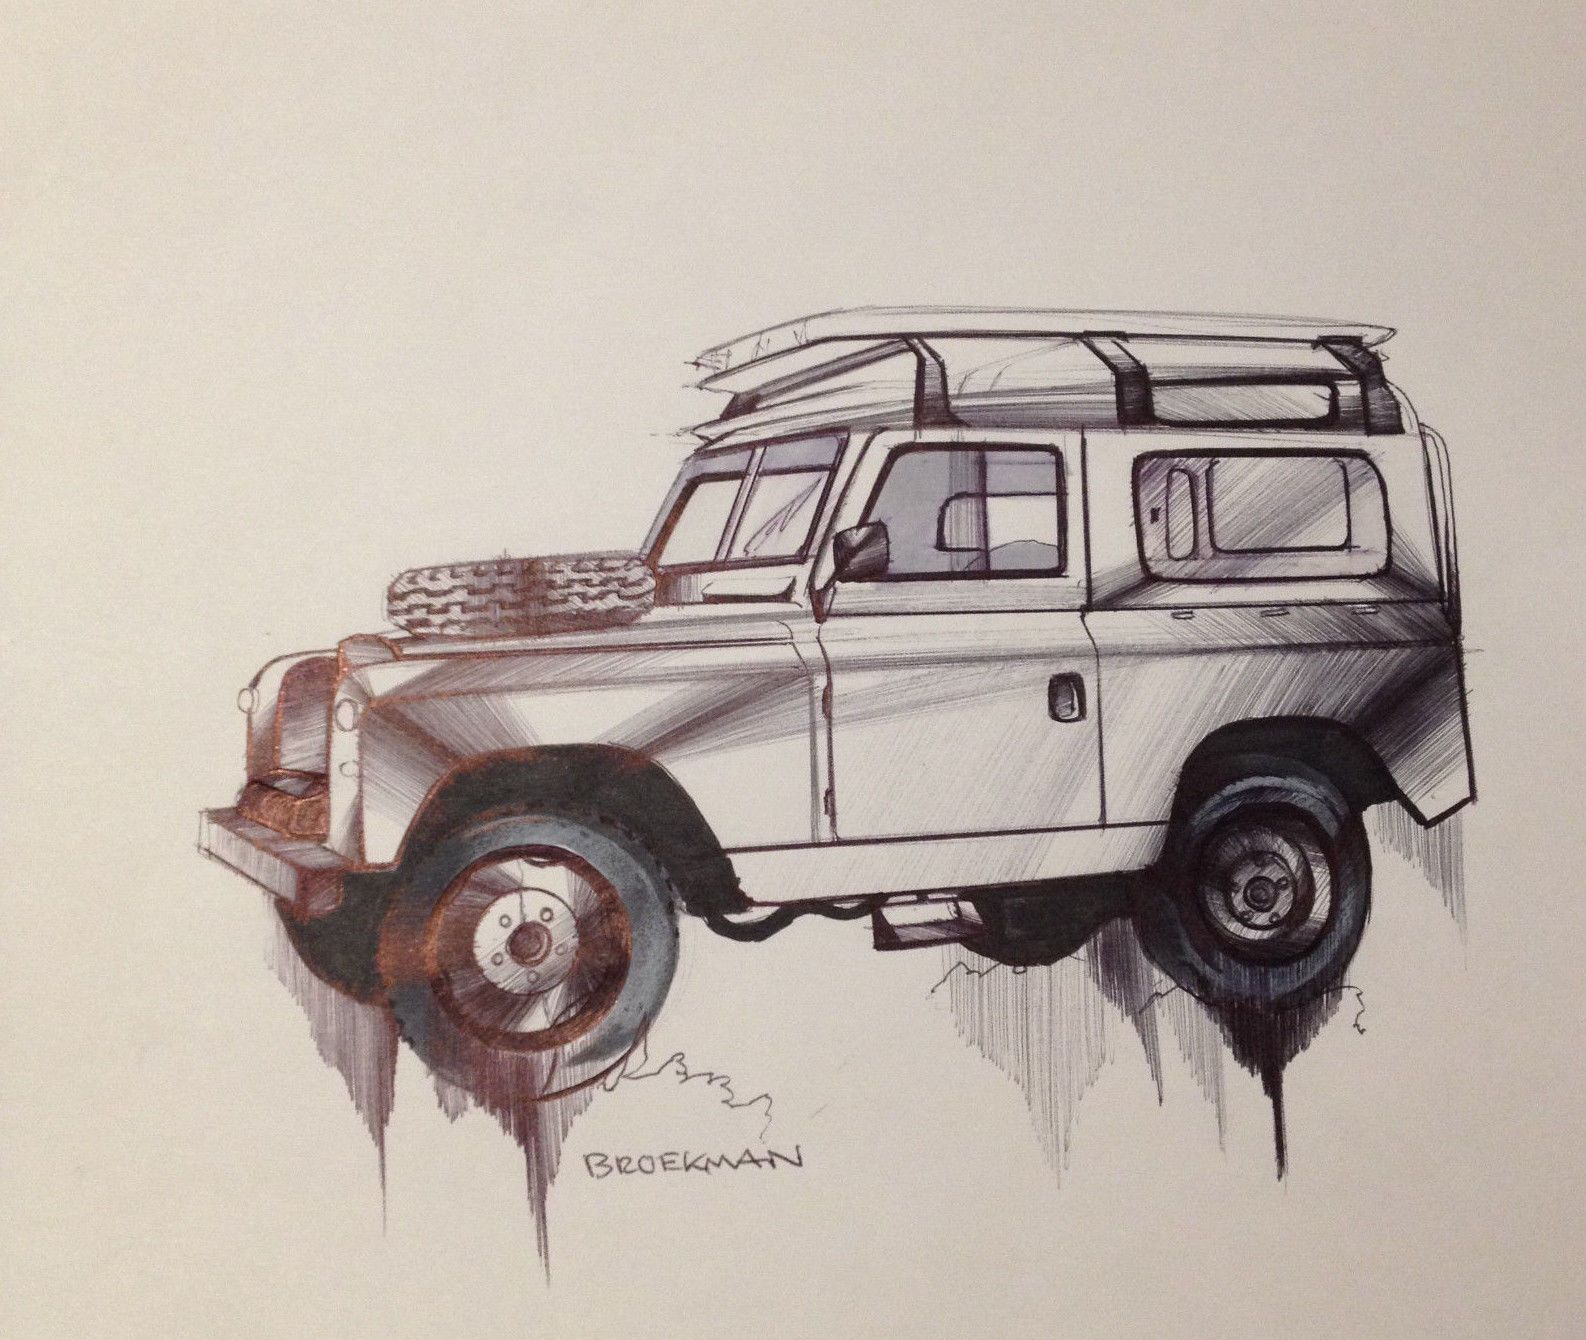 Broekman Original Pen and Marker Drawing Land Rover 88 Series I 4x4